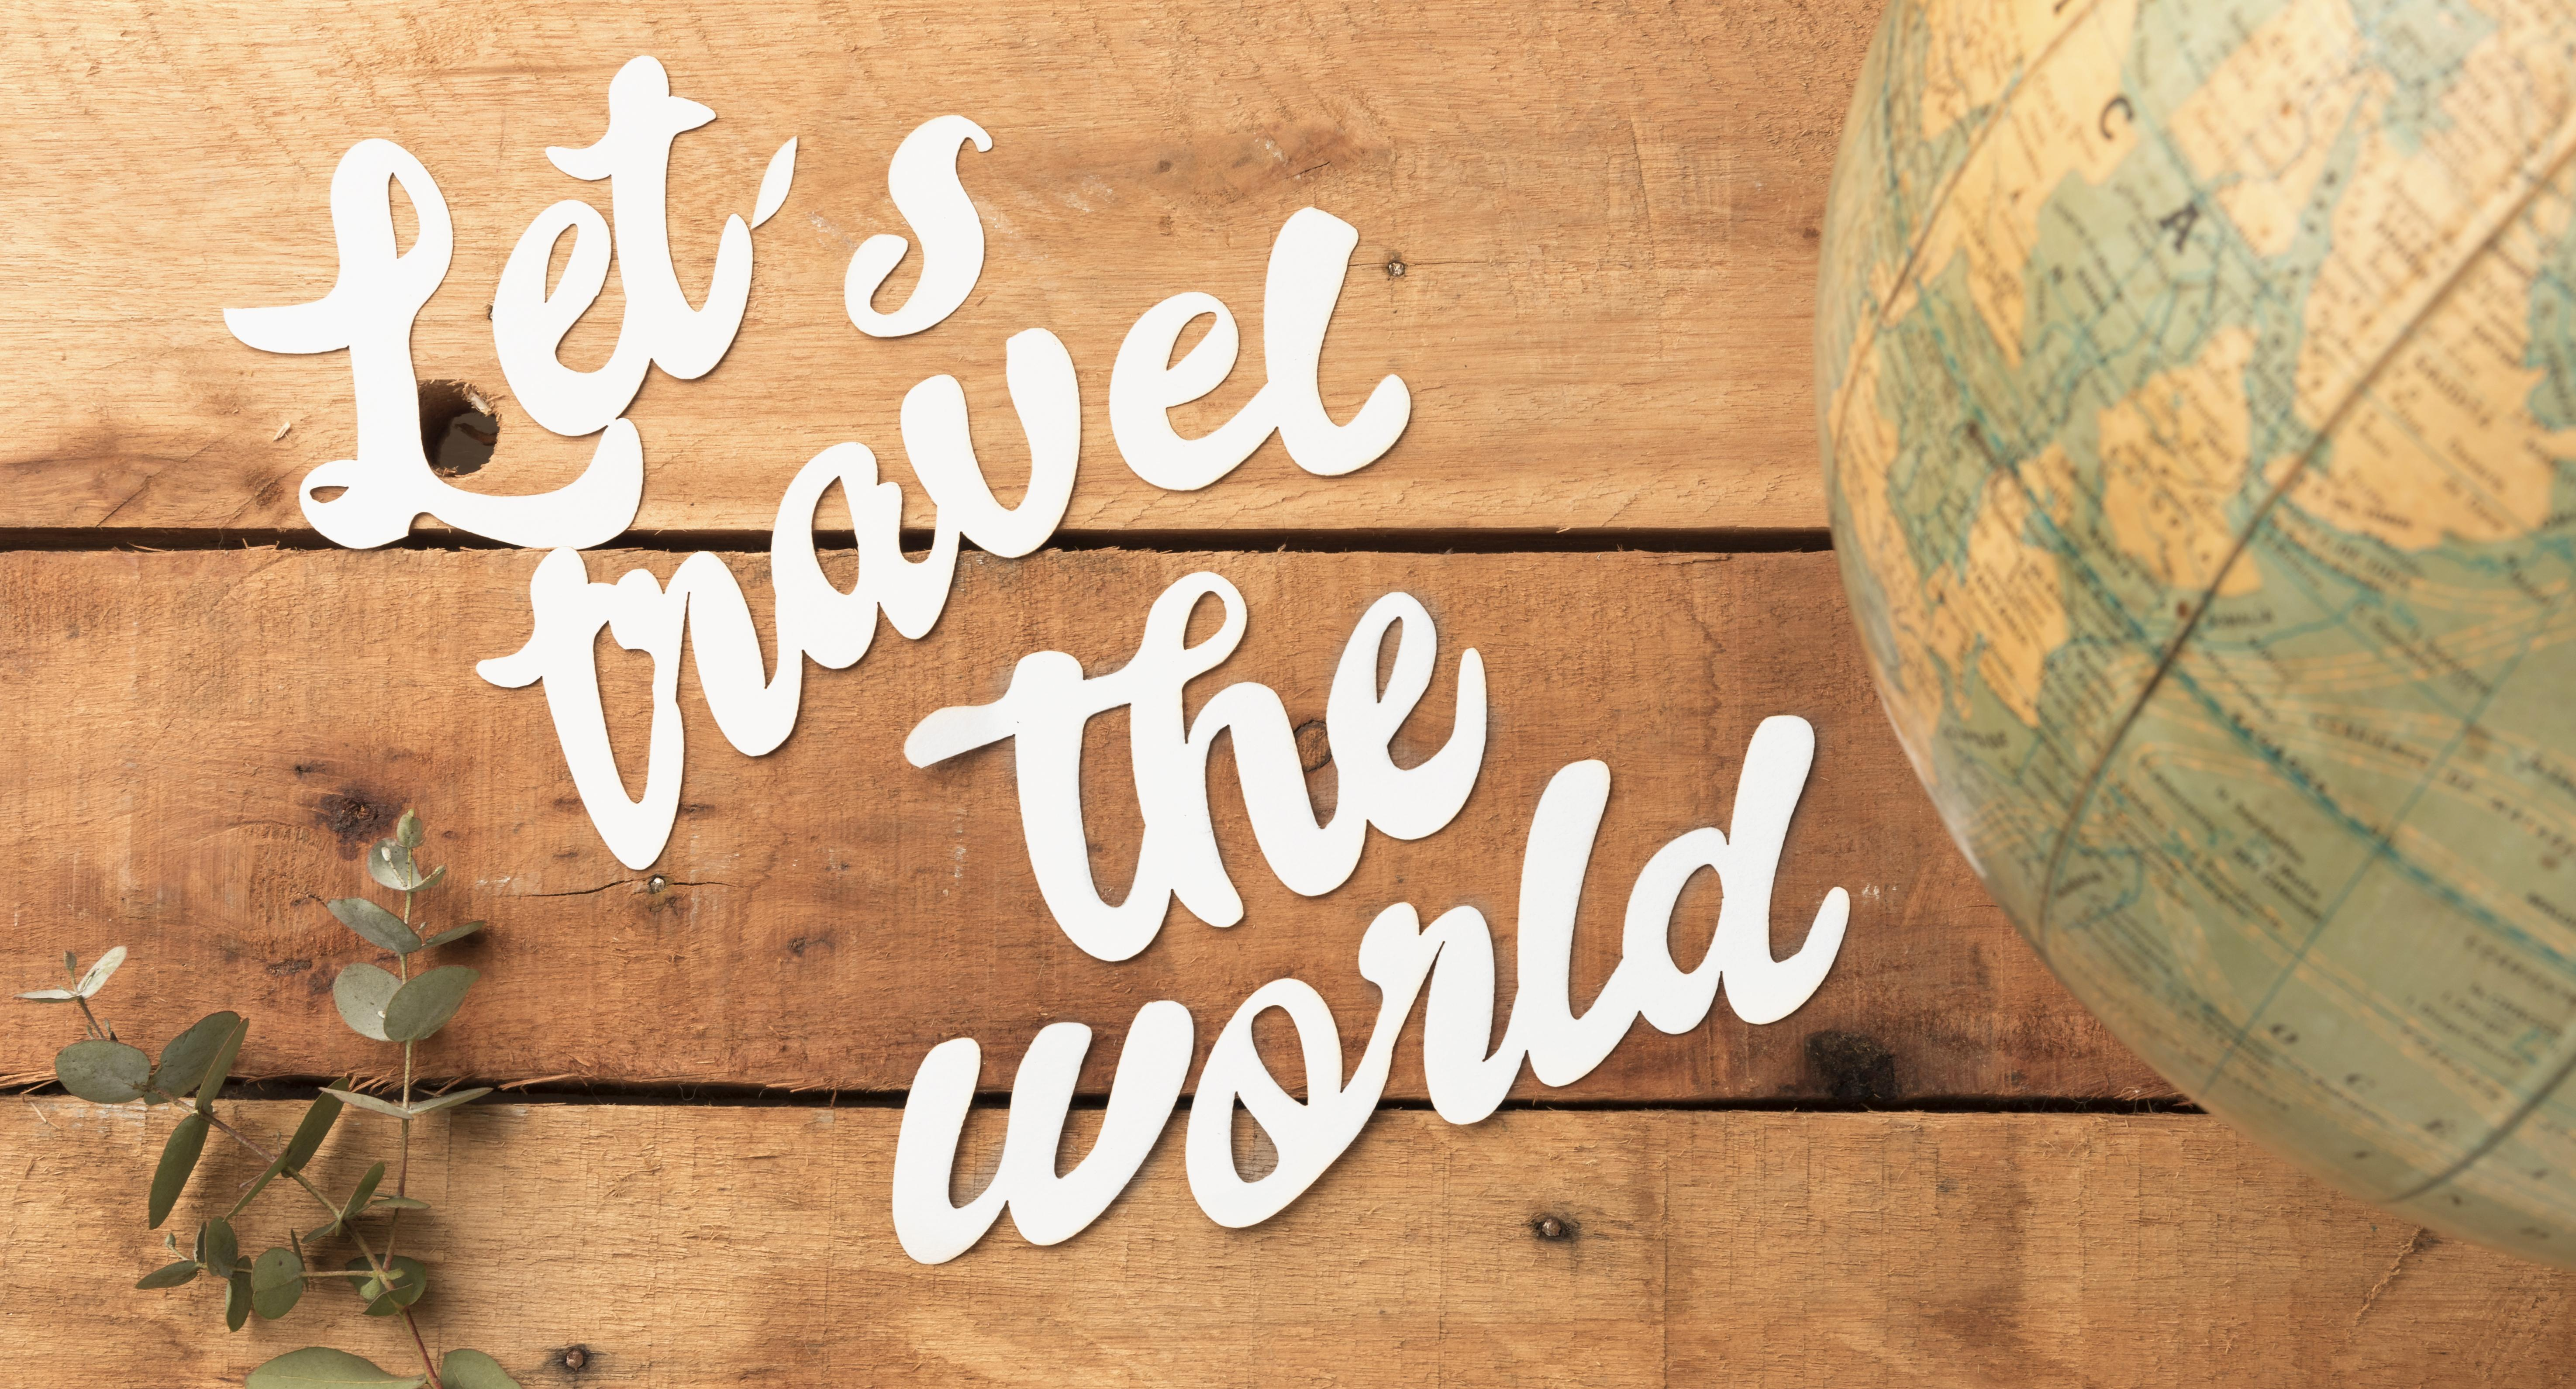 Travel the world header image